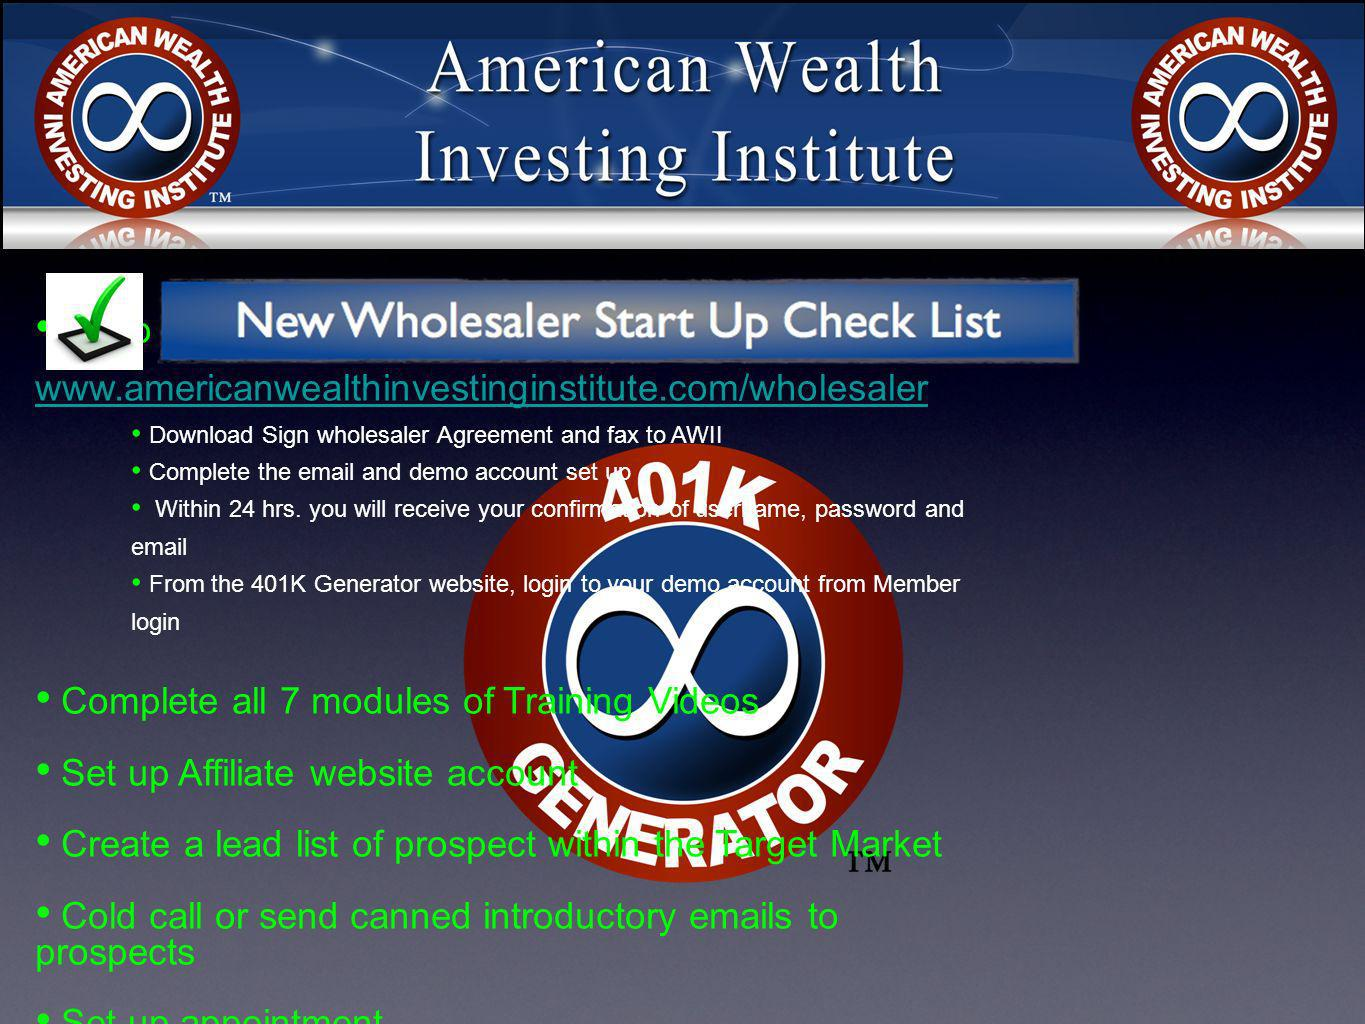 Go to www.americanwealthinvestinginstitute.com/wholesaler www.americanwealthinvestinginstitute.com/wholesaler Download Sign wholesaler Agreement and fax to AWII Complete the email and demo account set up Within 24 hrs.